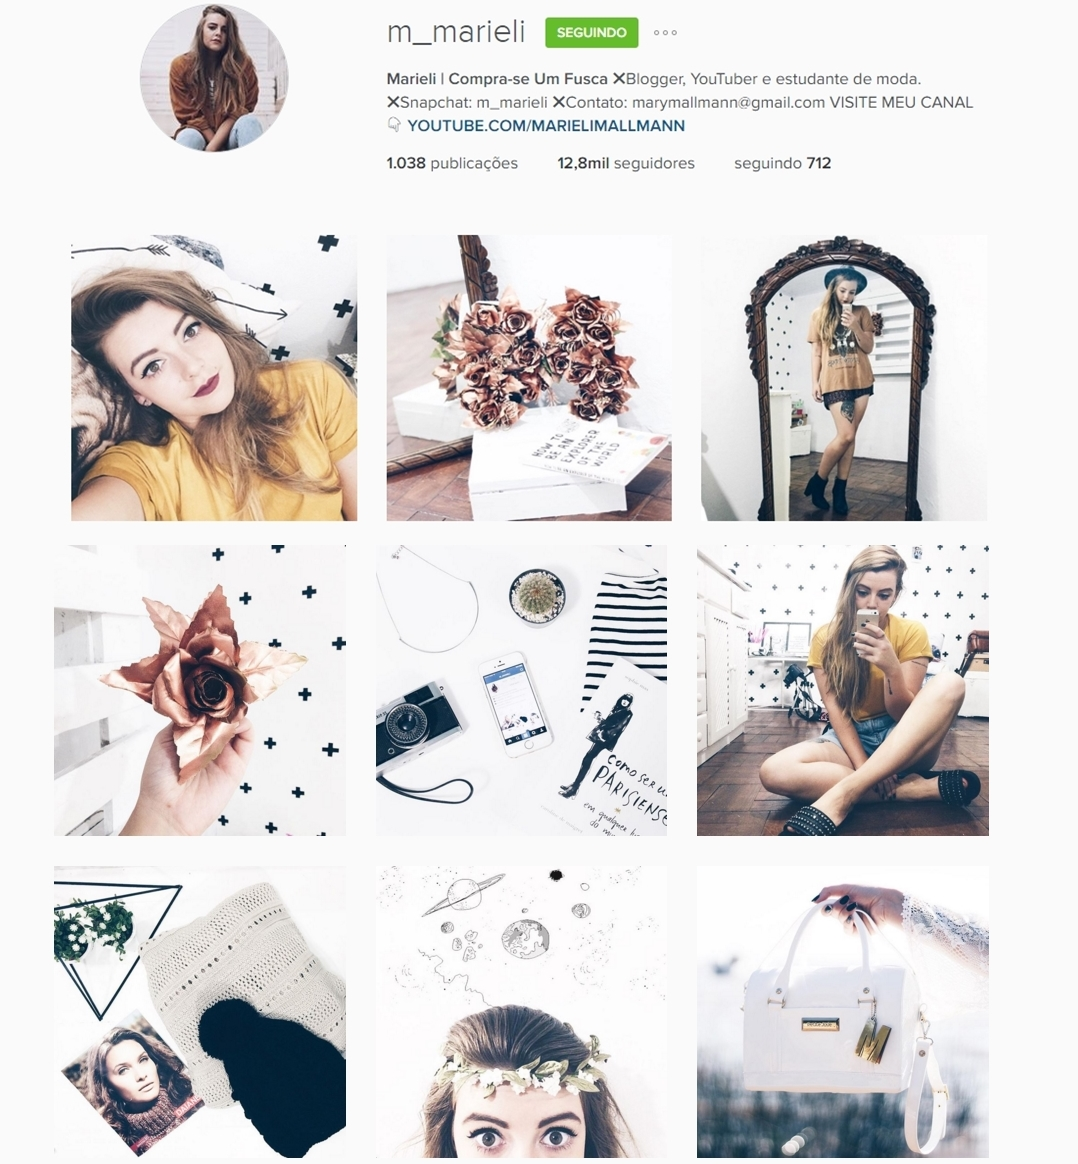 TOP 5 | Feeds para seguir e se inspirar no instagram